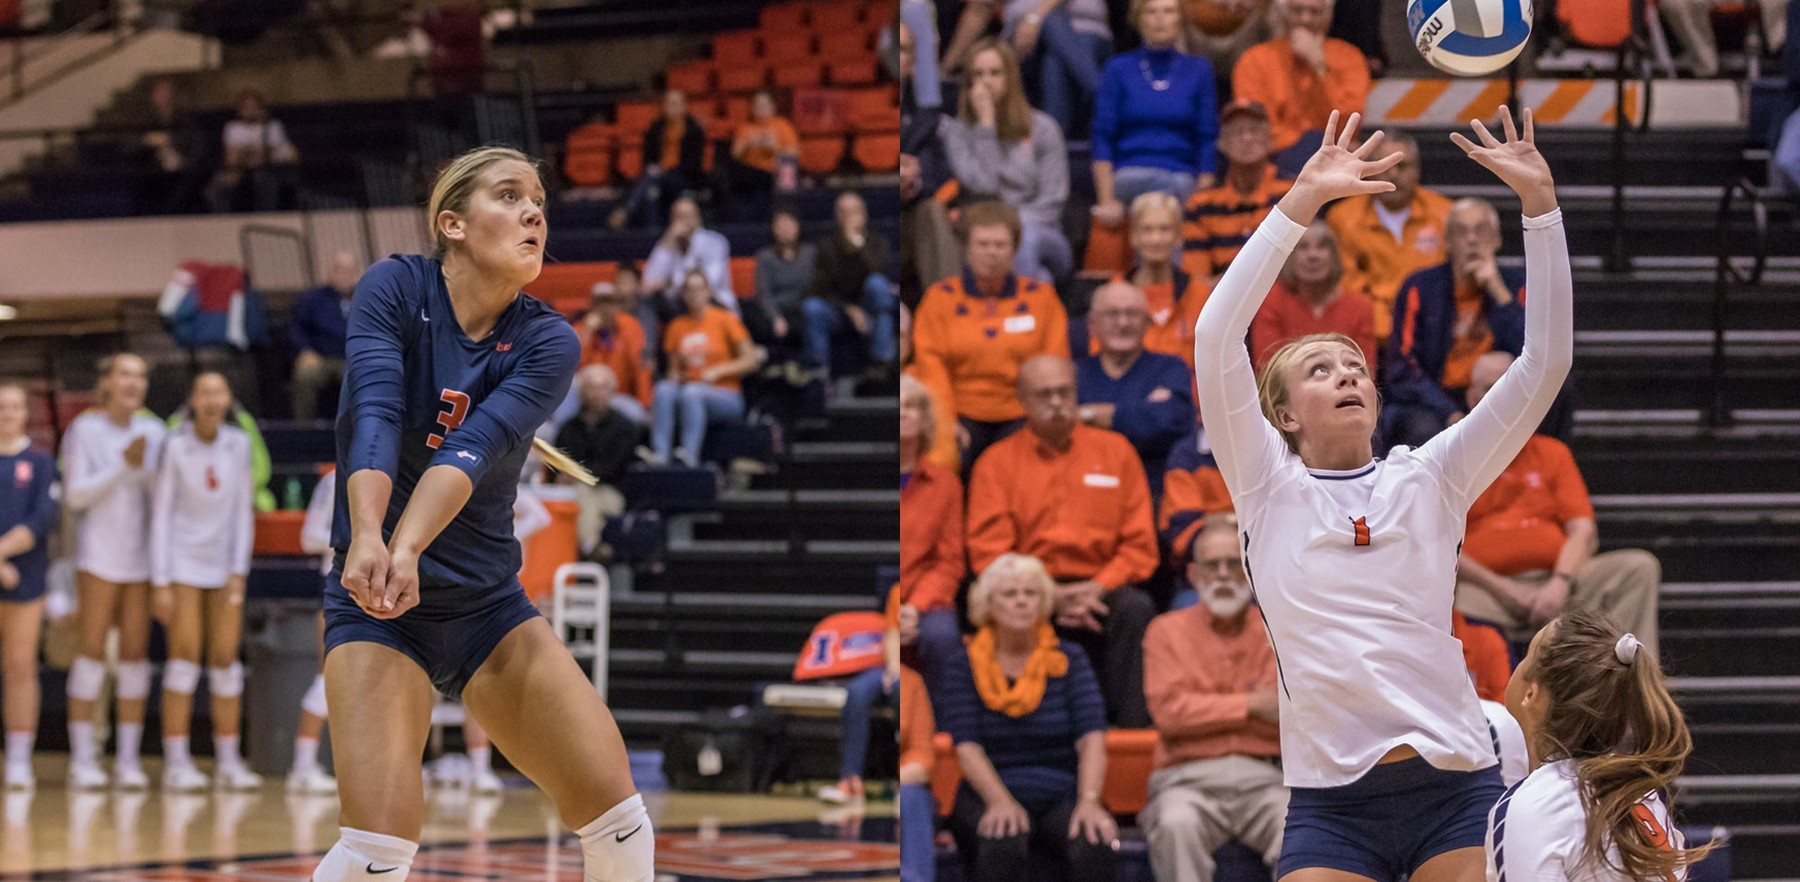 action photos of Brandi Donnelly and Jordyn Poulter